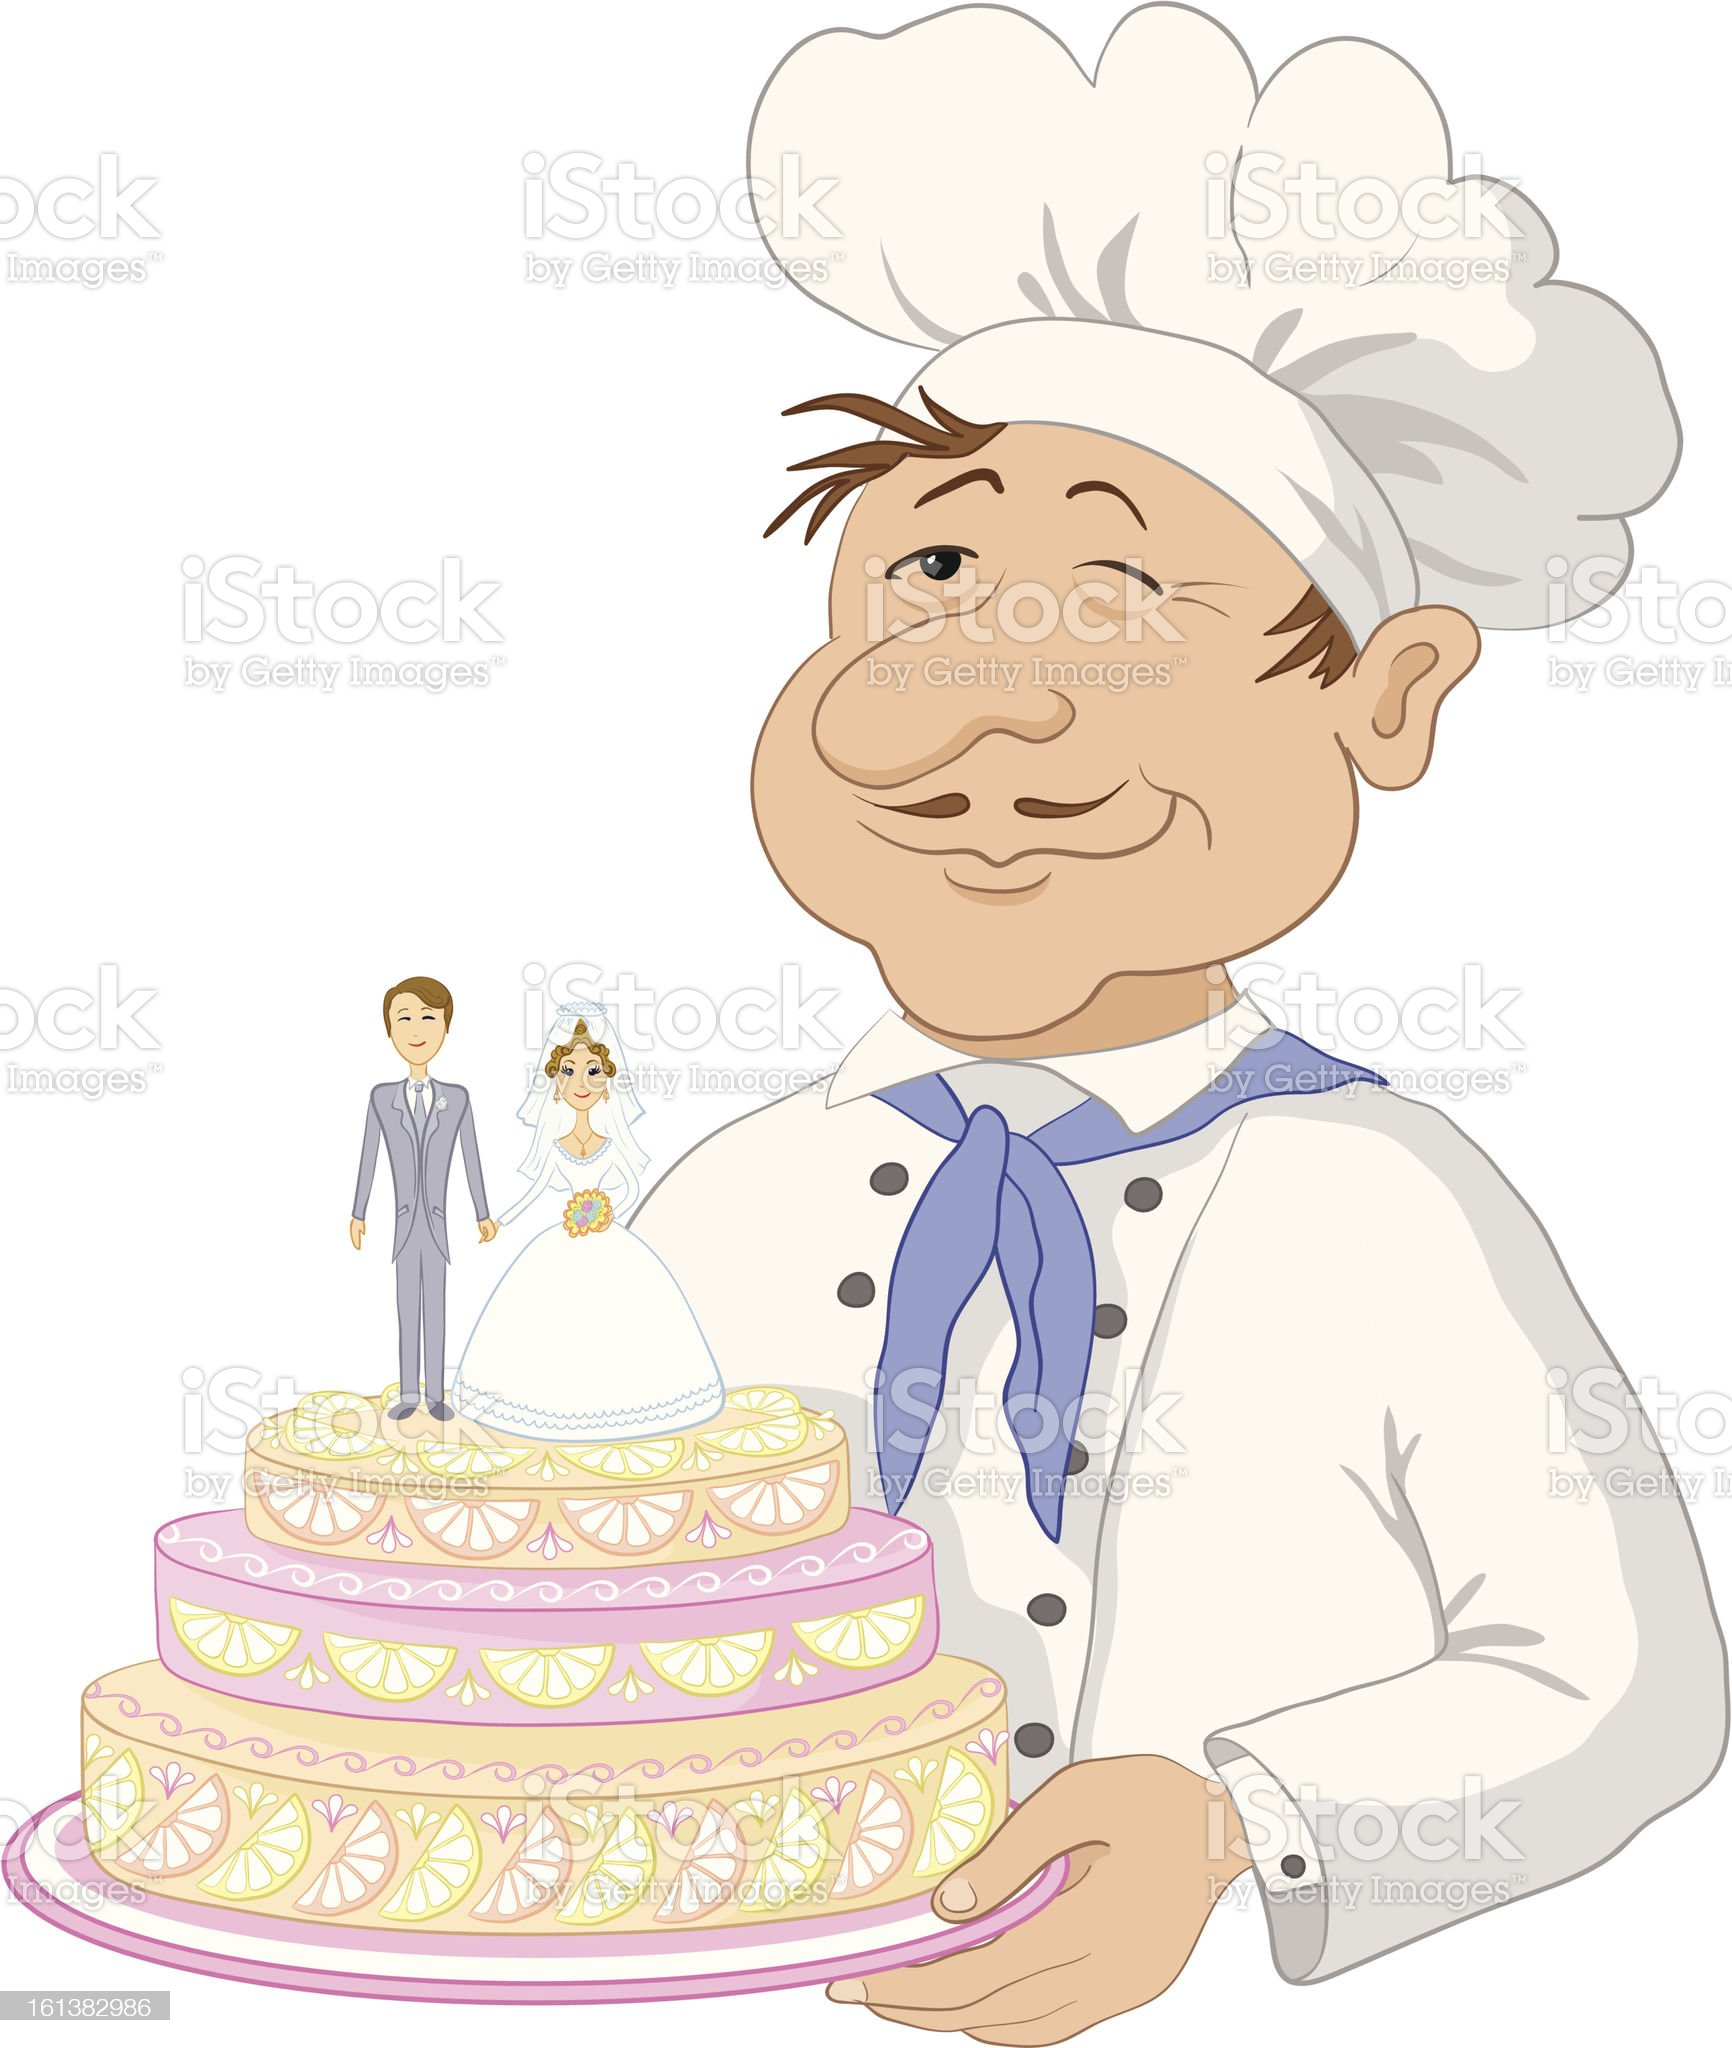 Cook with holiday wedding cake royalty-free stock vector art